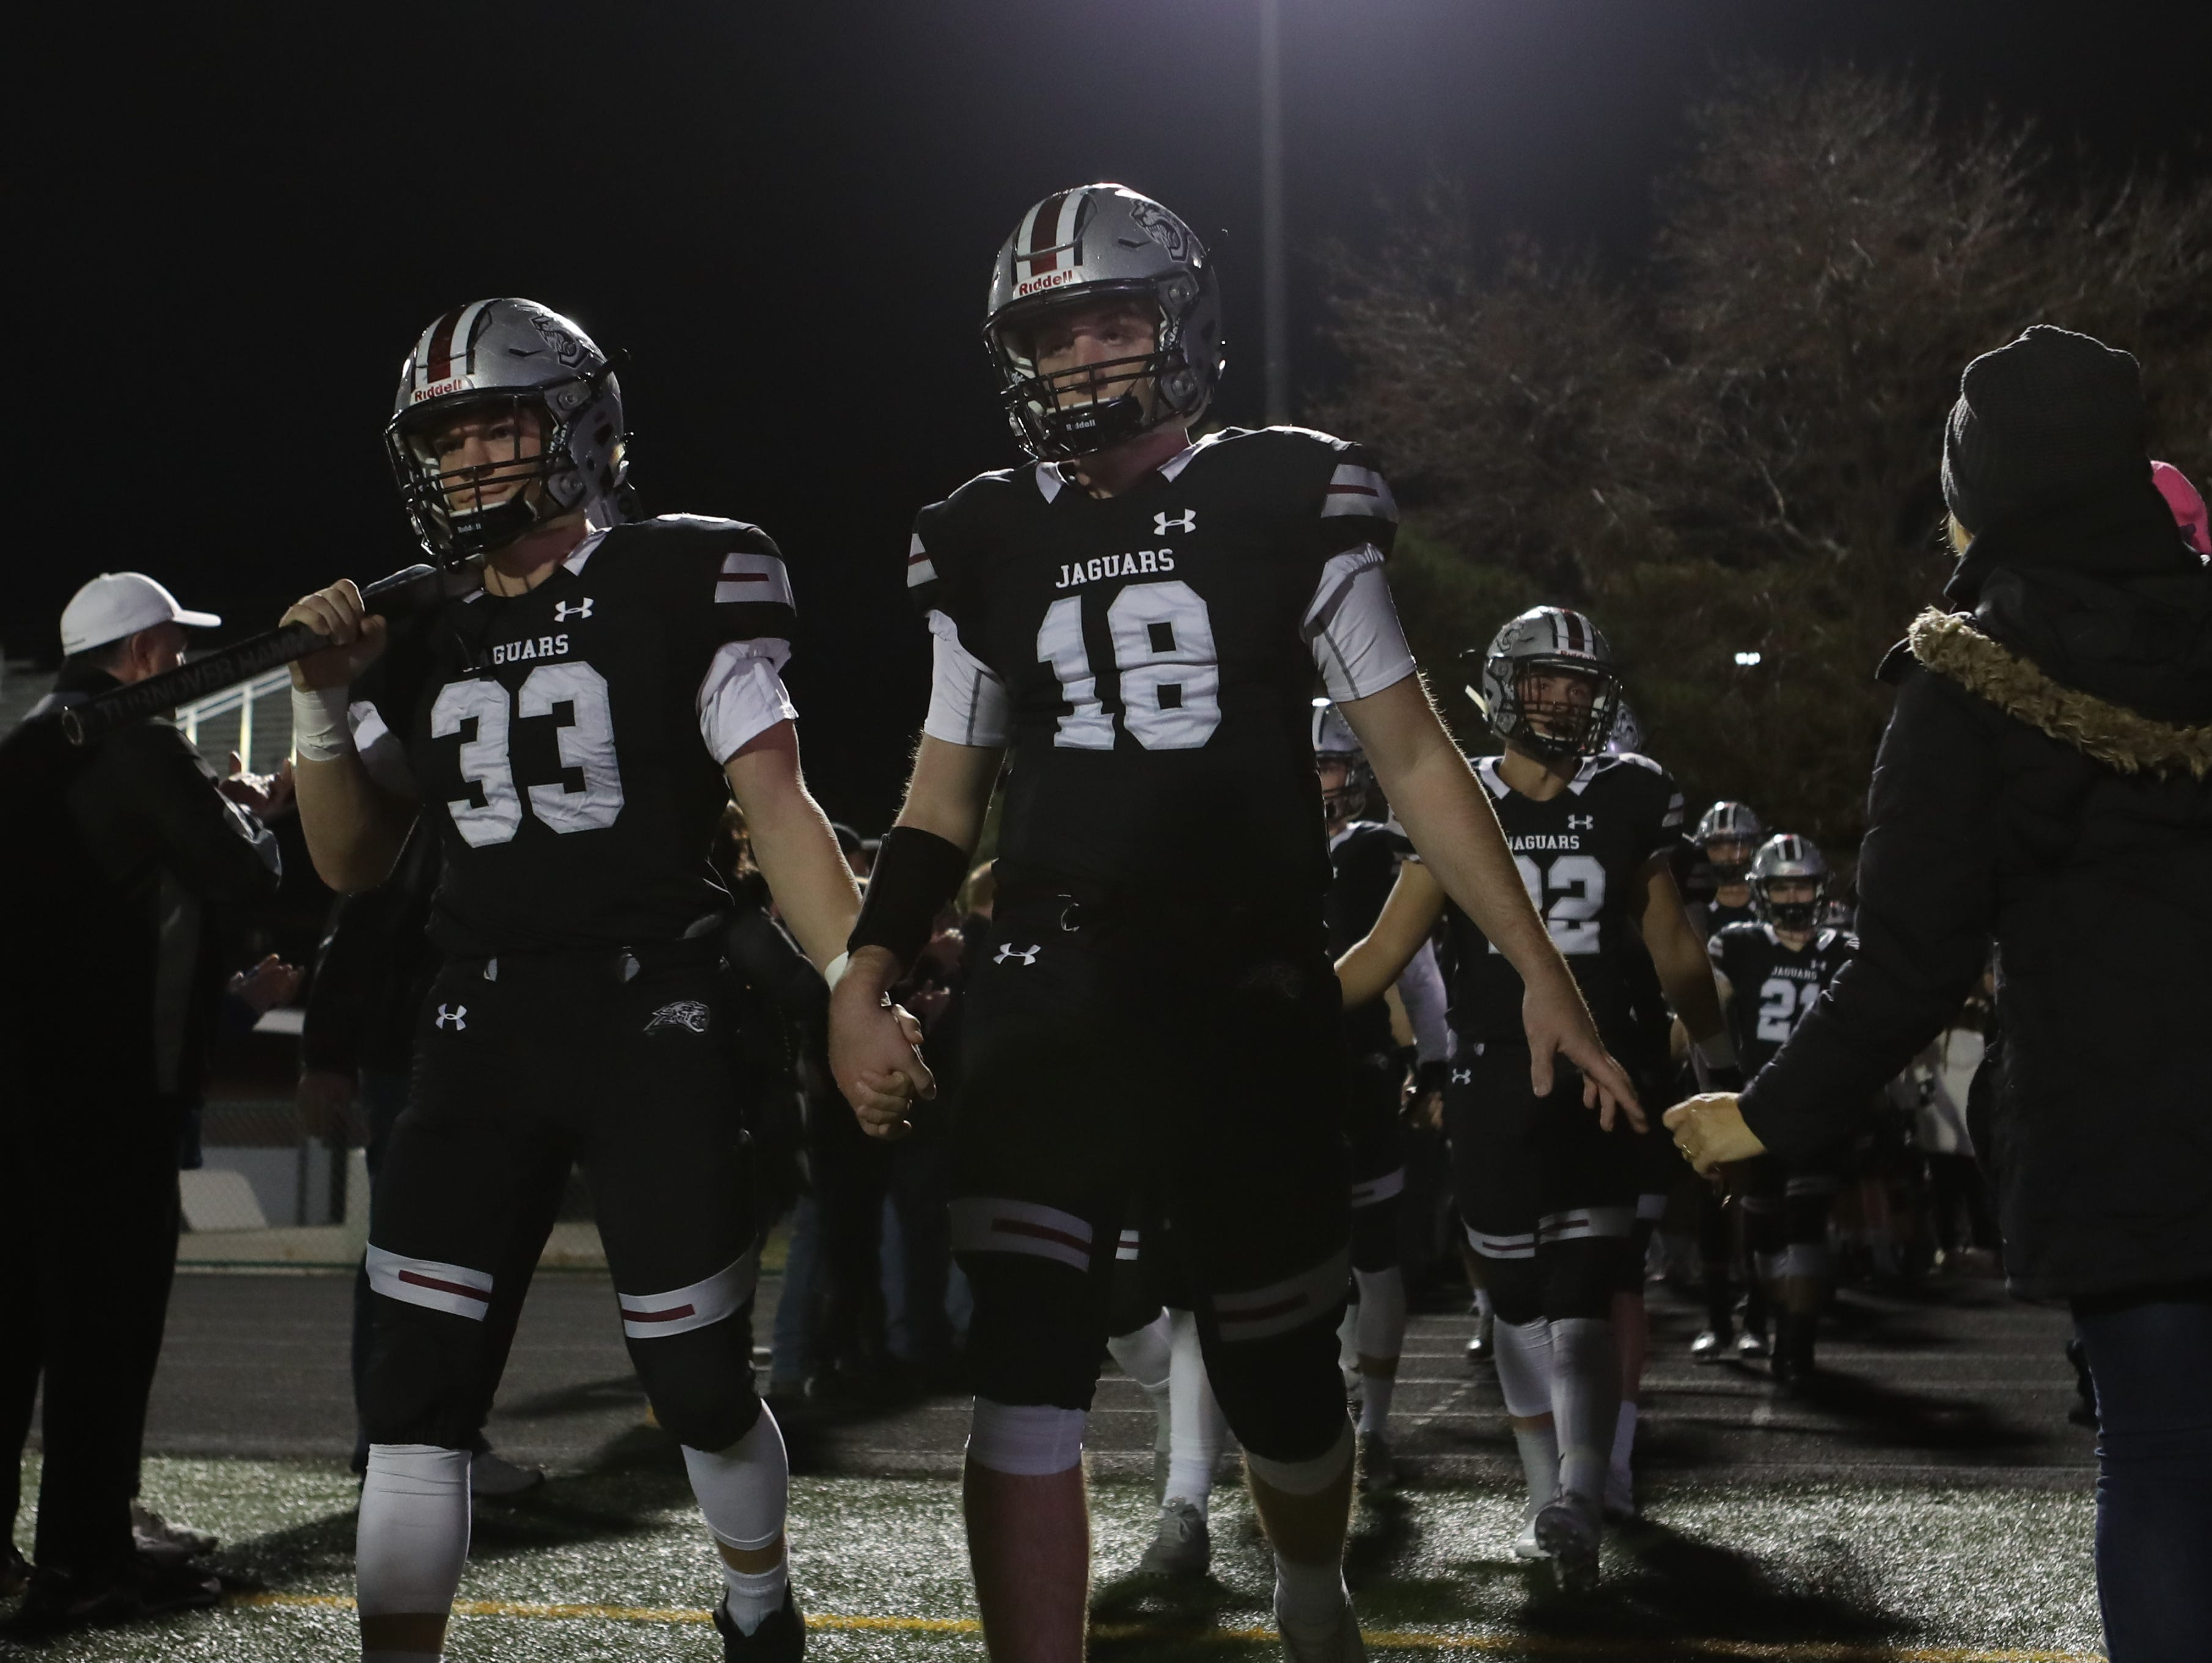 The Ankeny Centennial Jaguars enter the field before their game with the Southeast Polk Rams at Ankeny football stadium.